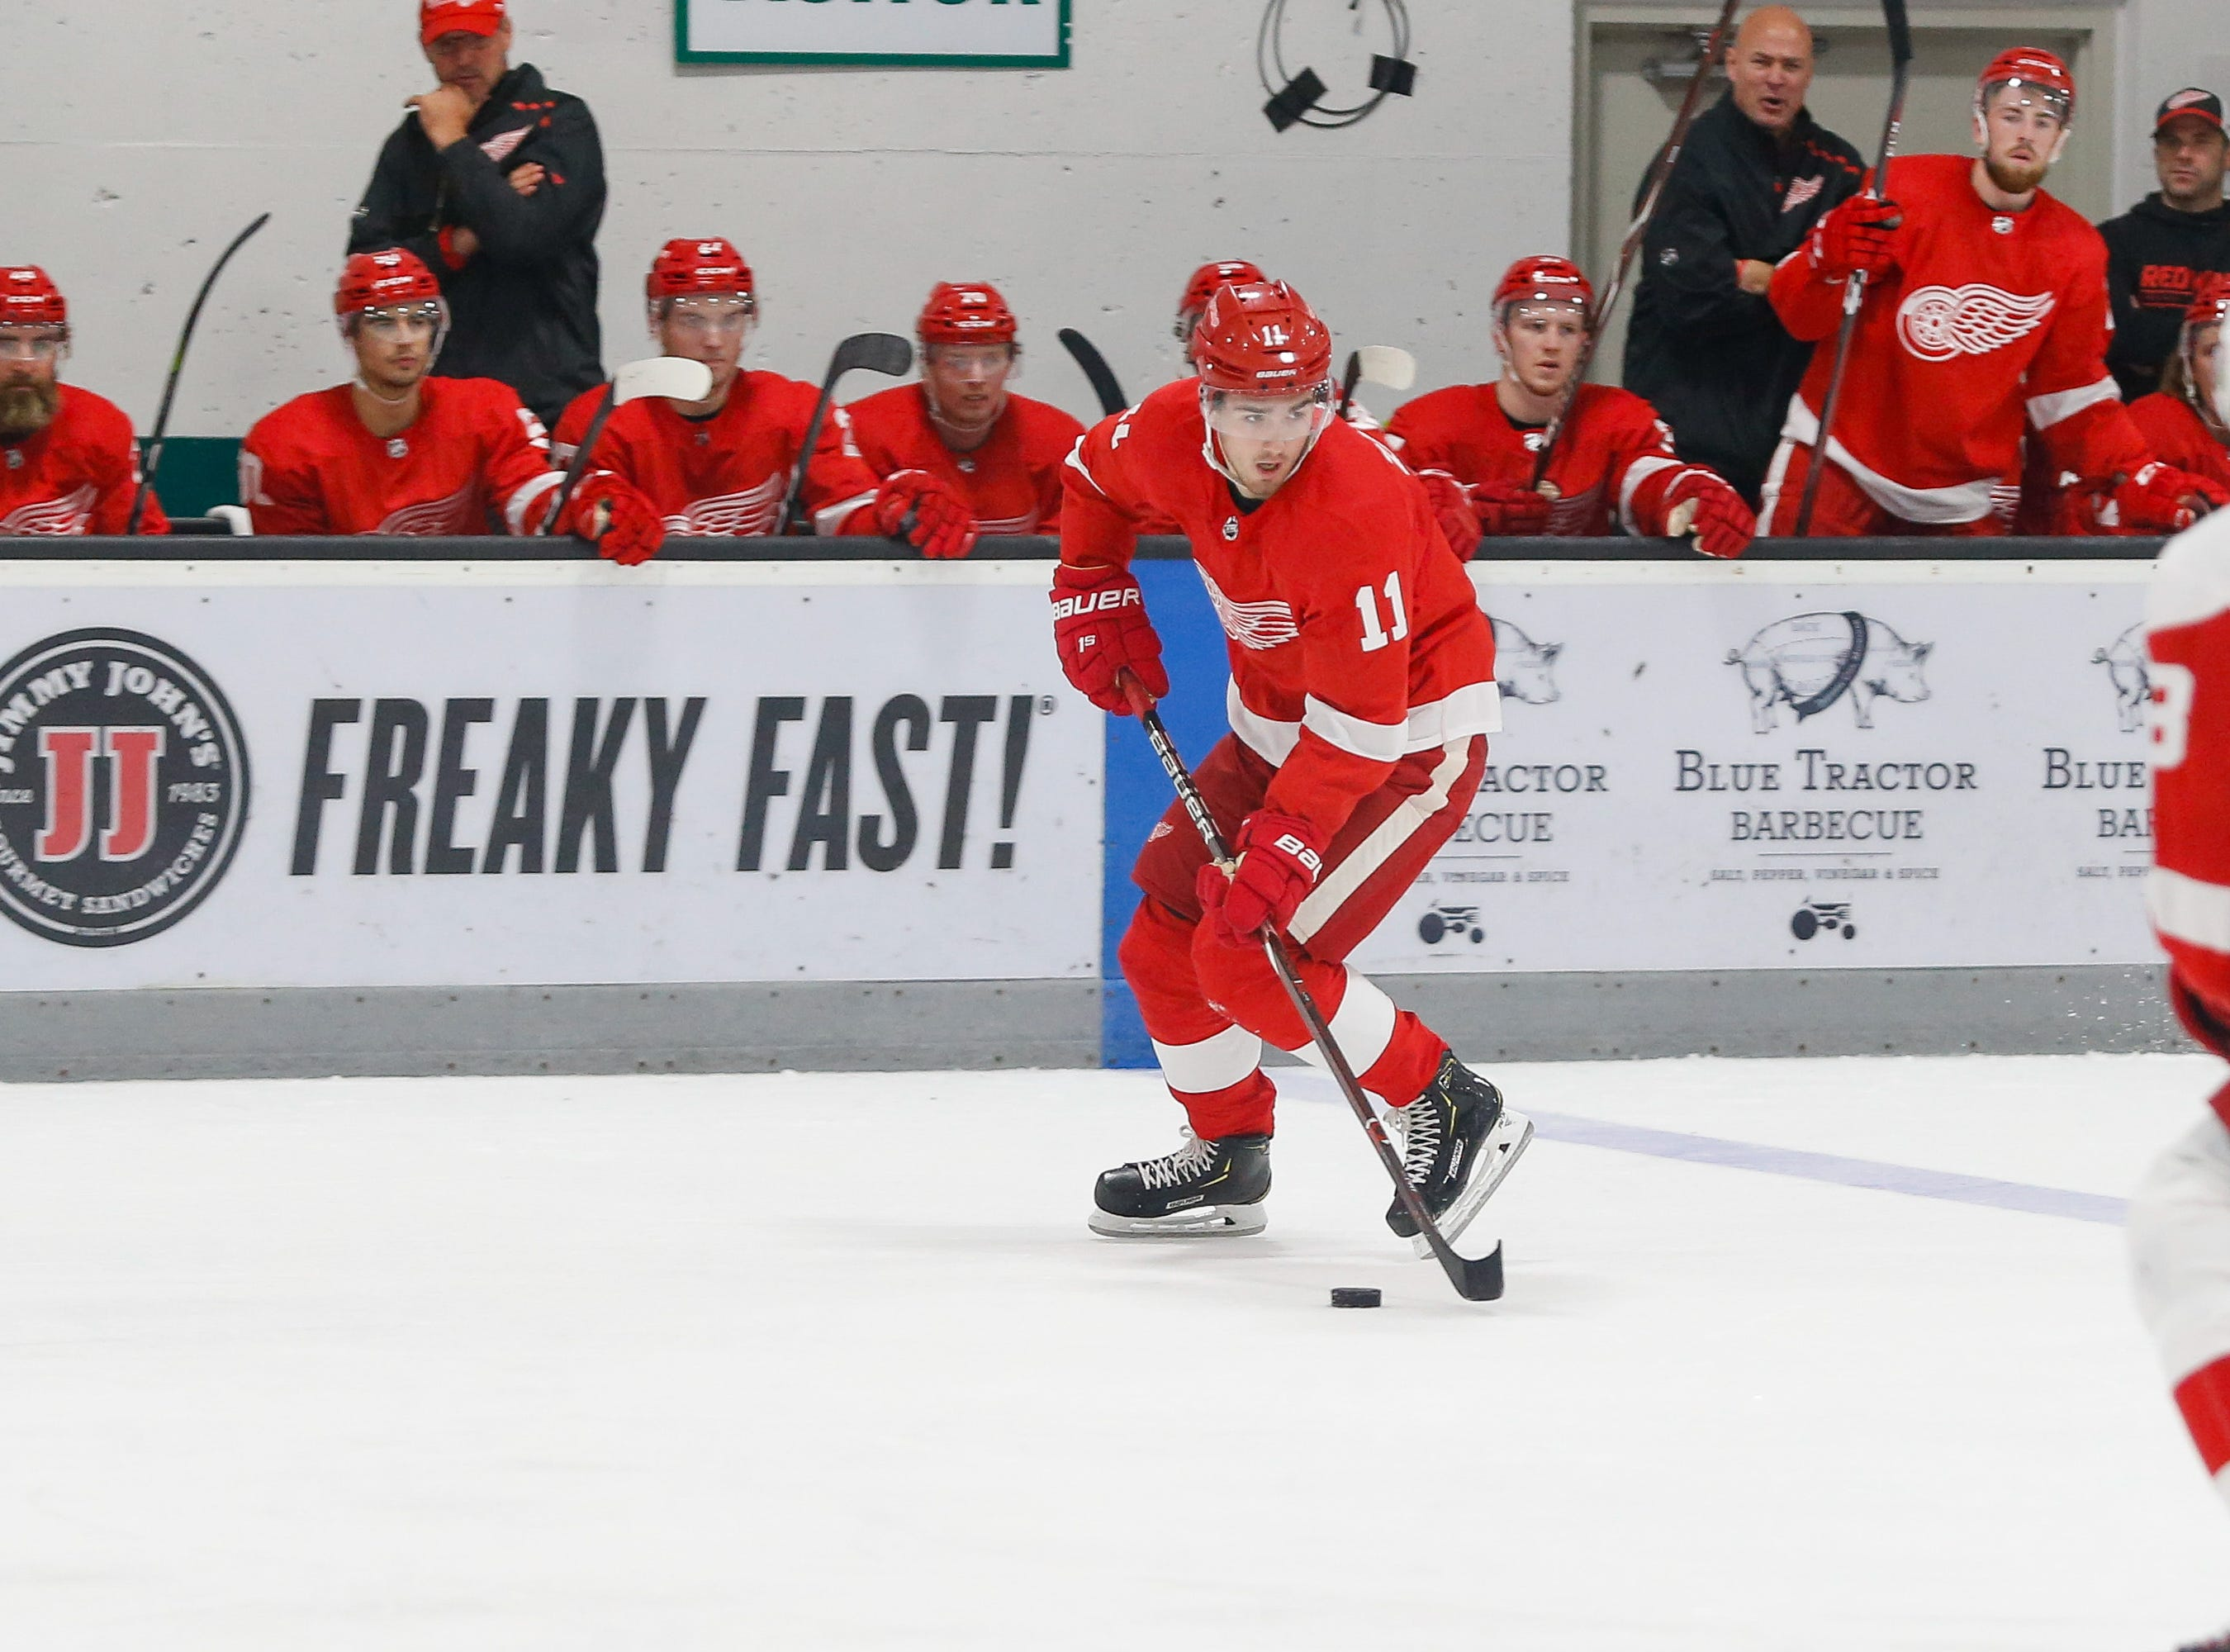 Filip Zadina looks for a passing lane as he carries the puck.